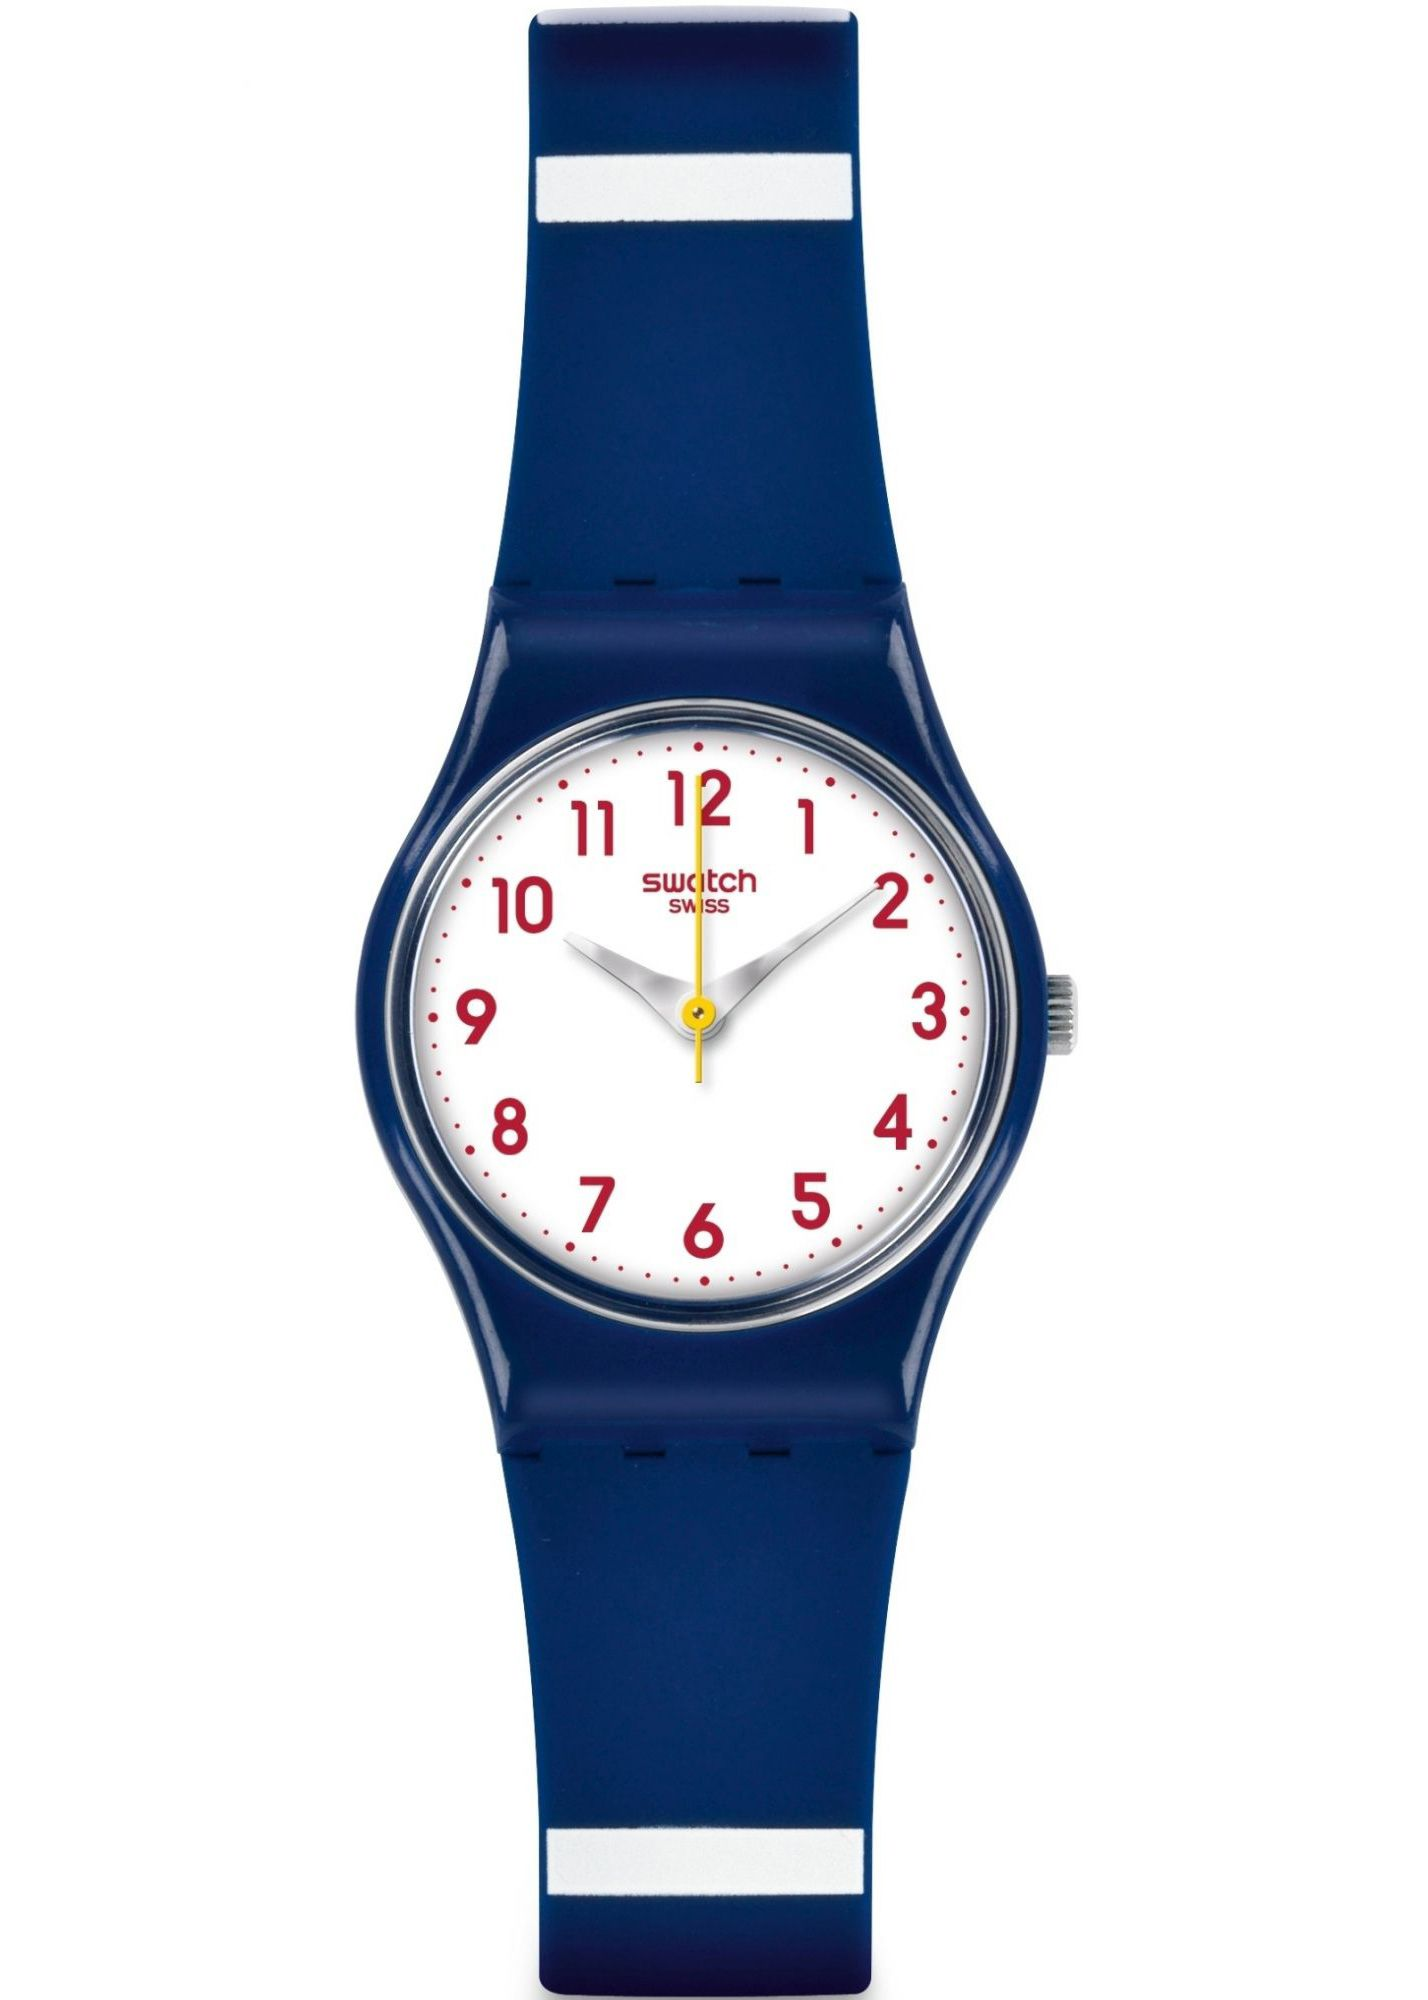 SWATCH MATELOT TWO TONE STRAP LADIES WATCH LN149 £32.00  Breeze into a more colour-led summer with the fashion-worthy MATELOT, a super chic styling combo of colour you'll be wearing with everything. #swatch #watcheseastgrinstead